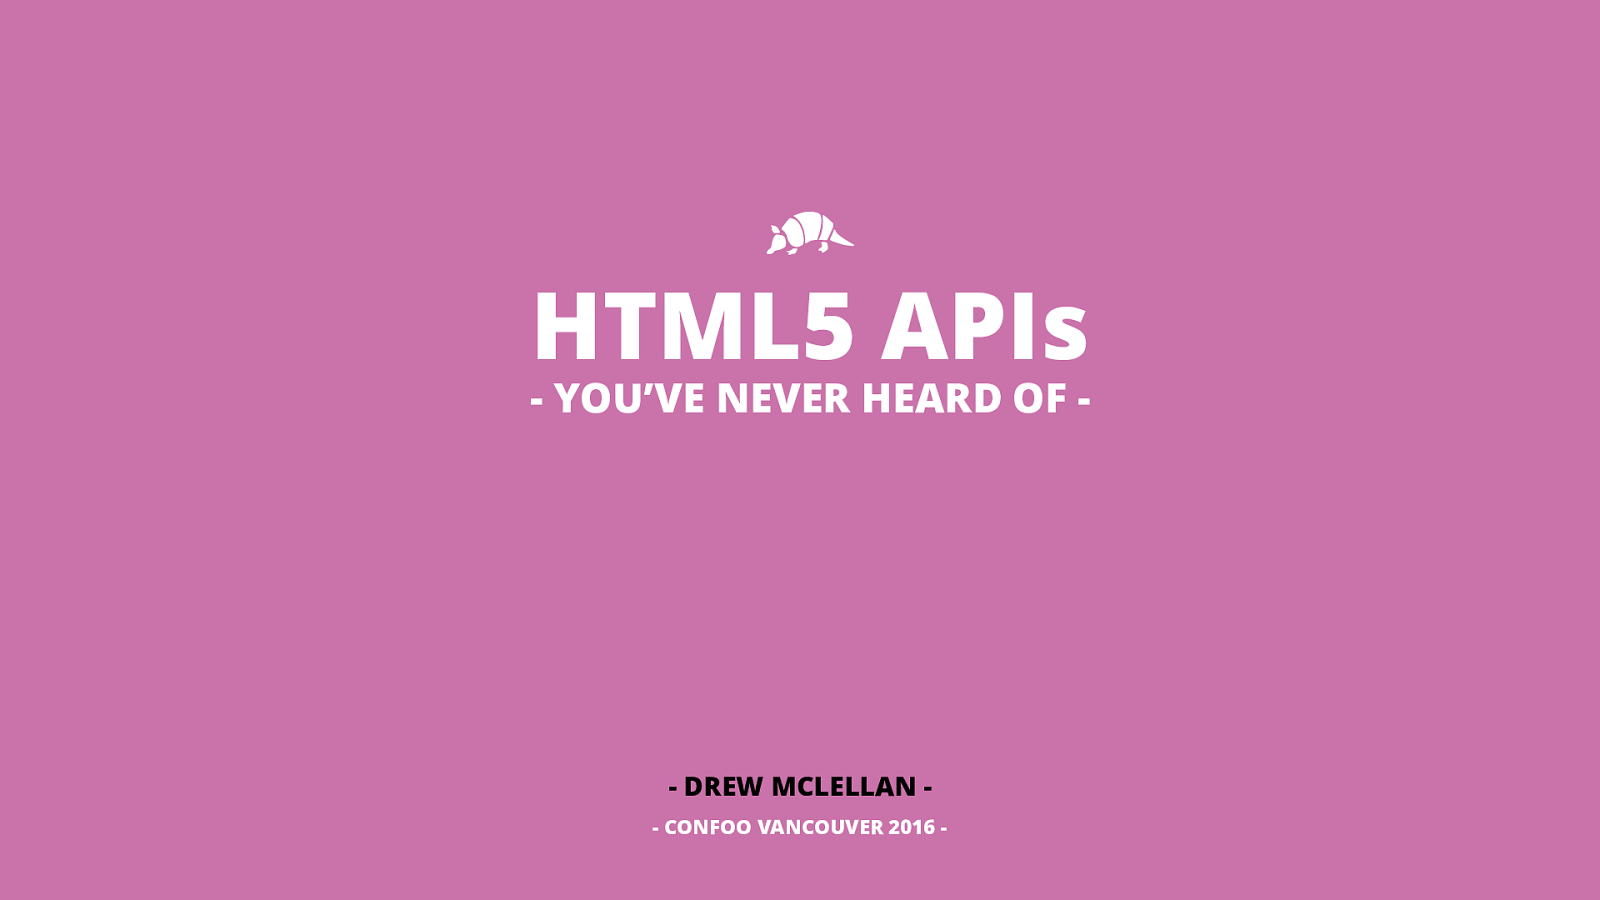 HTML5 APIs You've Never Heard Of